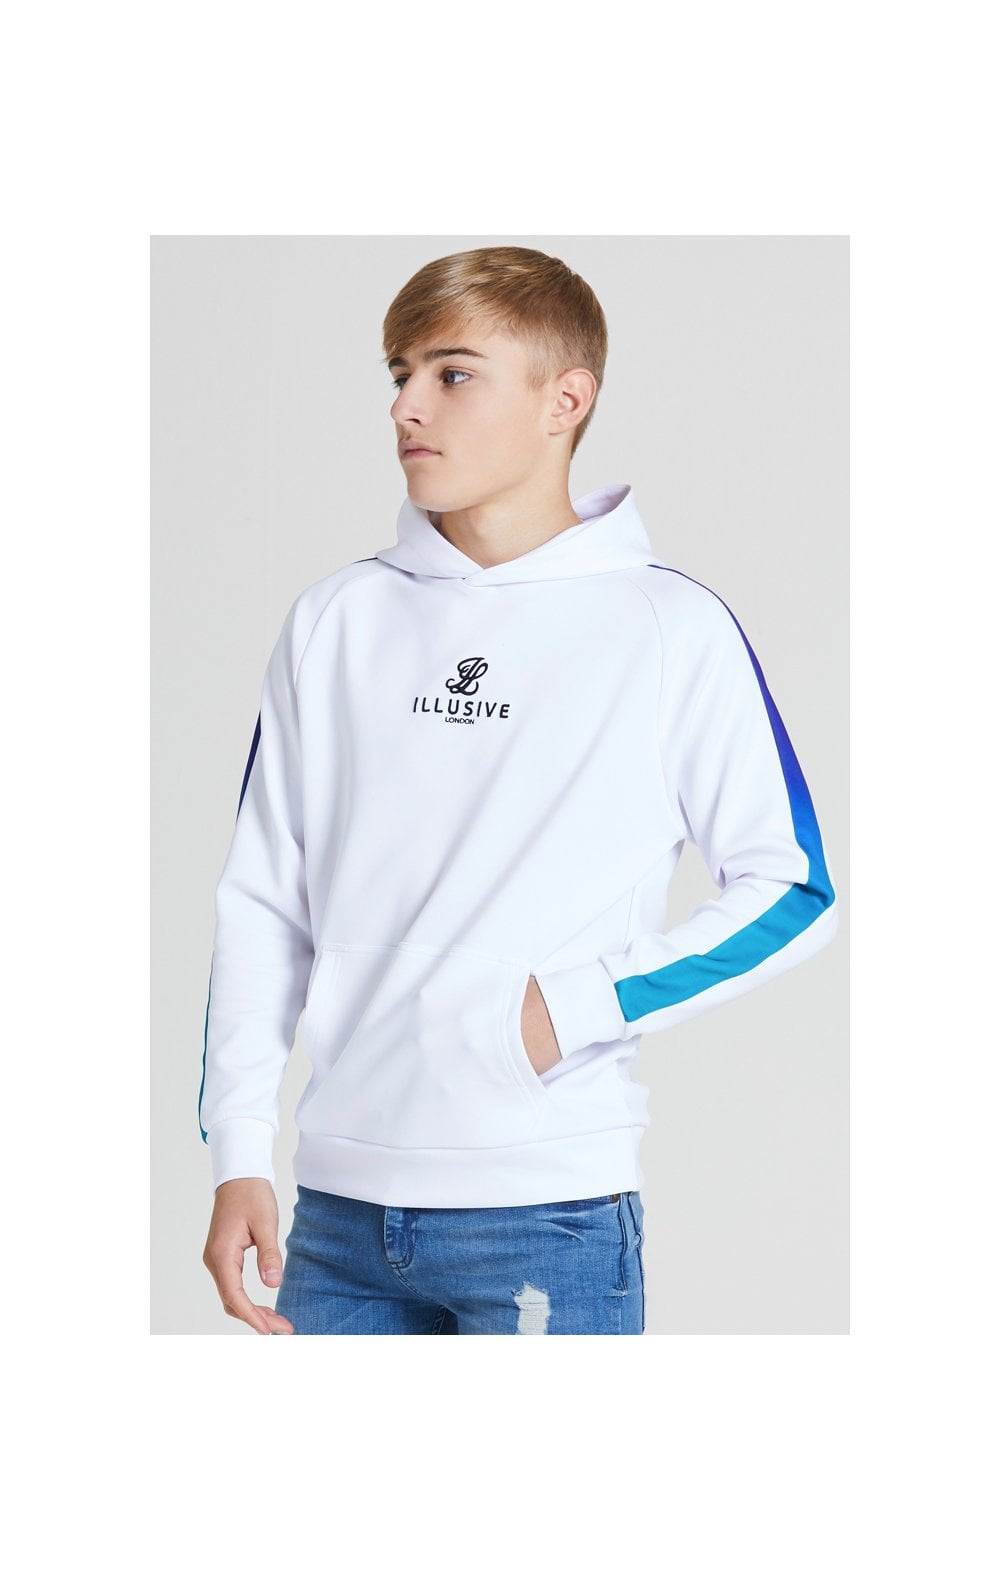 Illusive London Fade Panel Overhead Hoodie - White , Purple & Teal Green